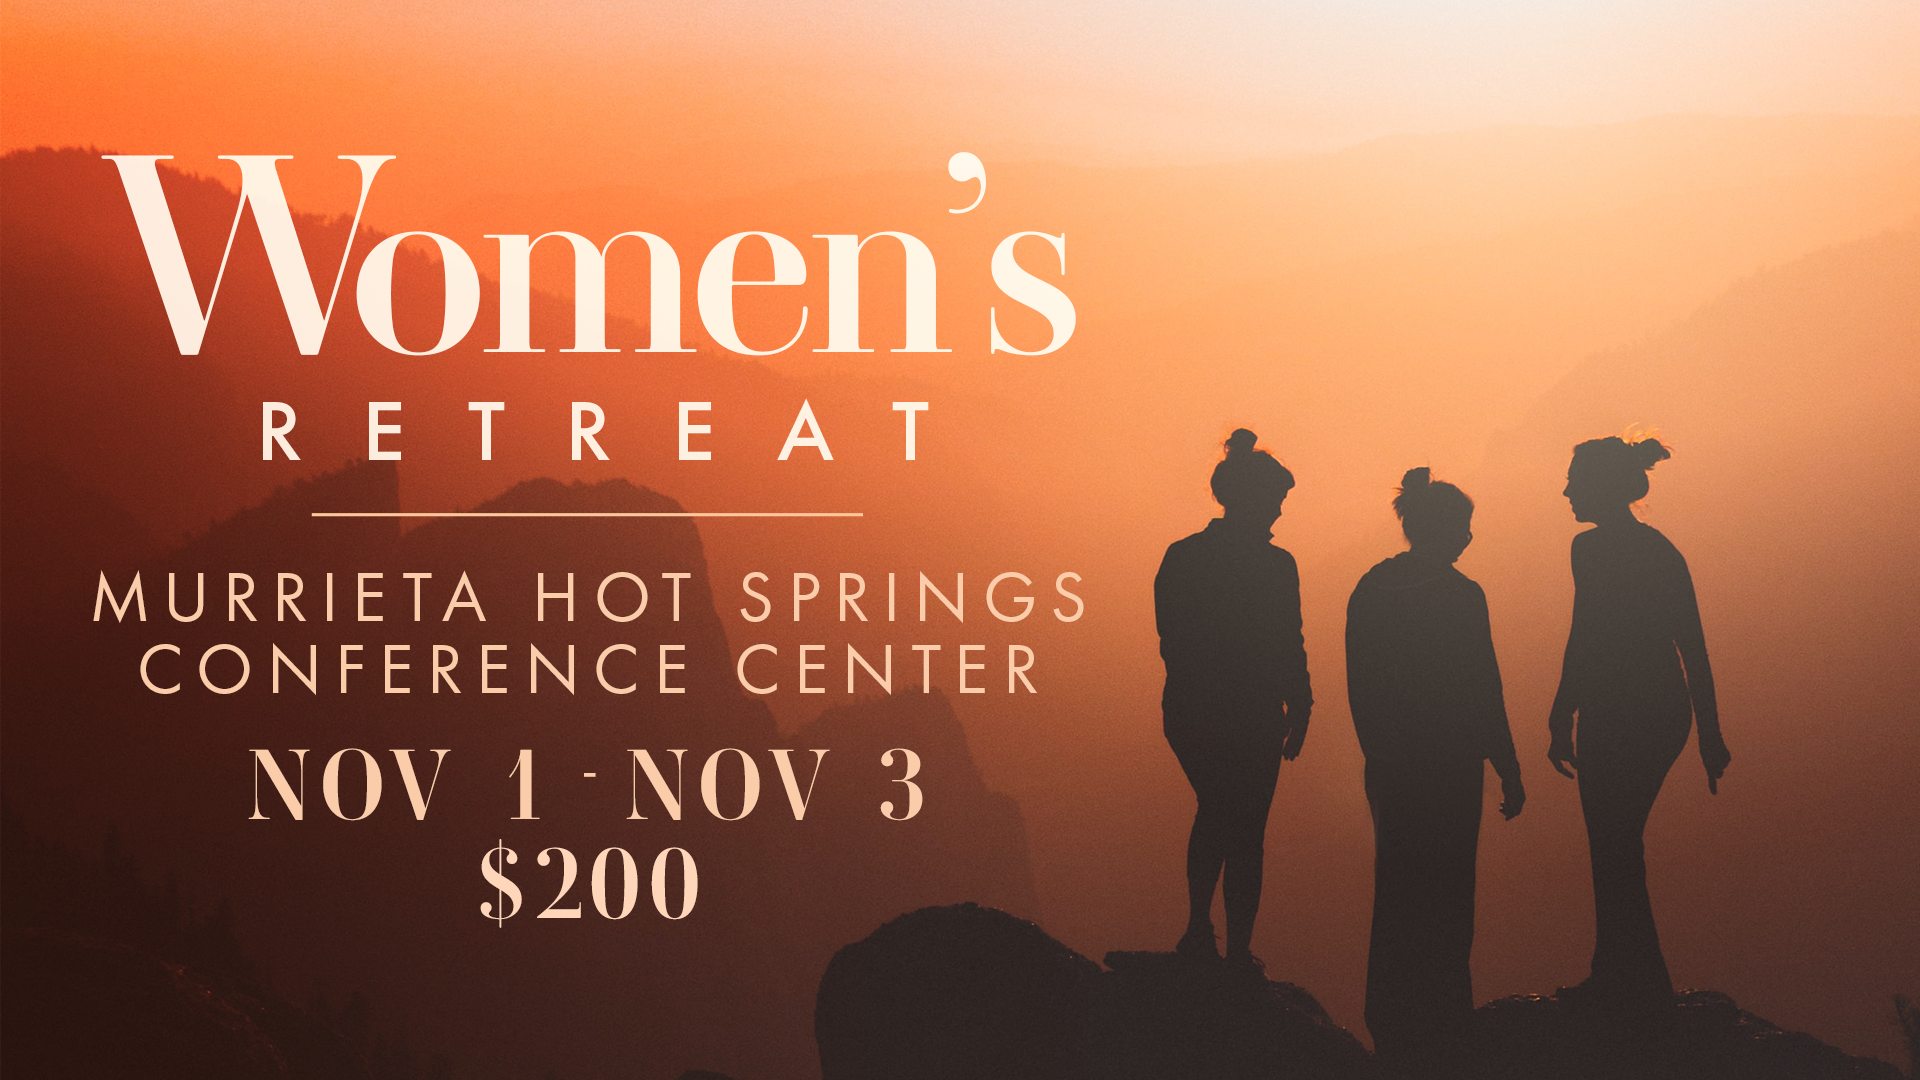 Come join other women from New Vision as we experience enriching fellowship and deep life-change at gorgeous Murrieta Hot Springs. November 1 - 3, 2019. $200 ($50 deposit due at sign-up)